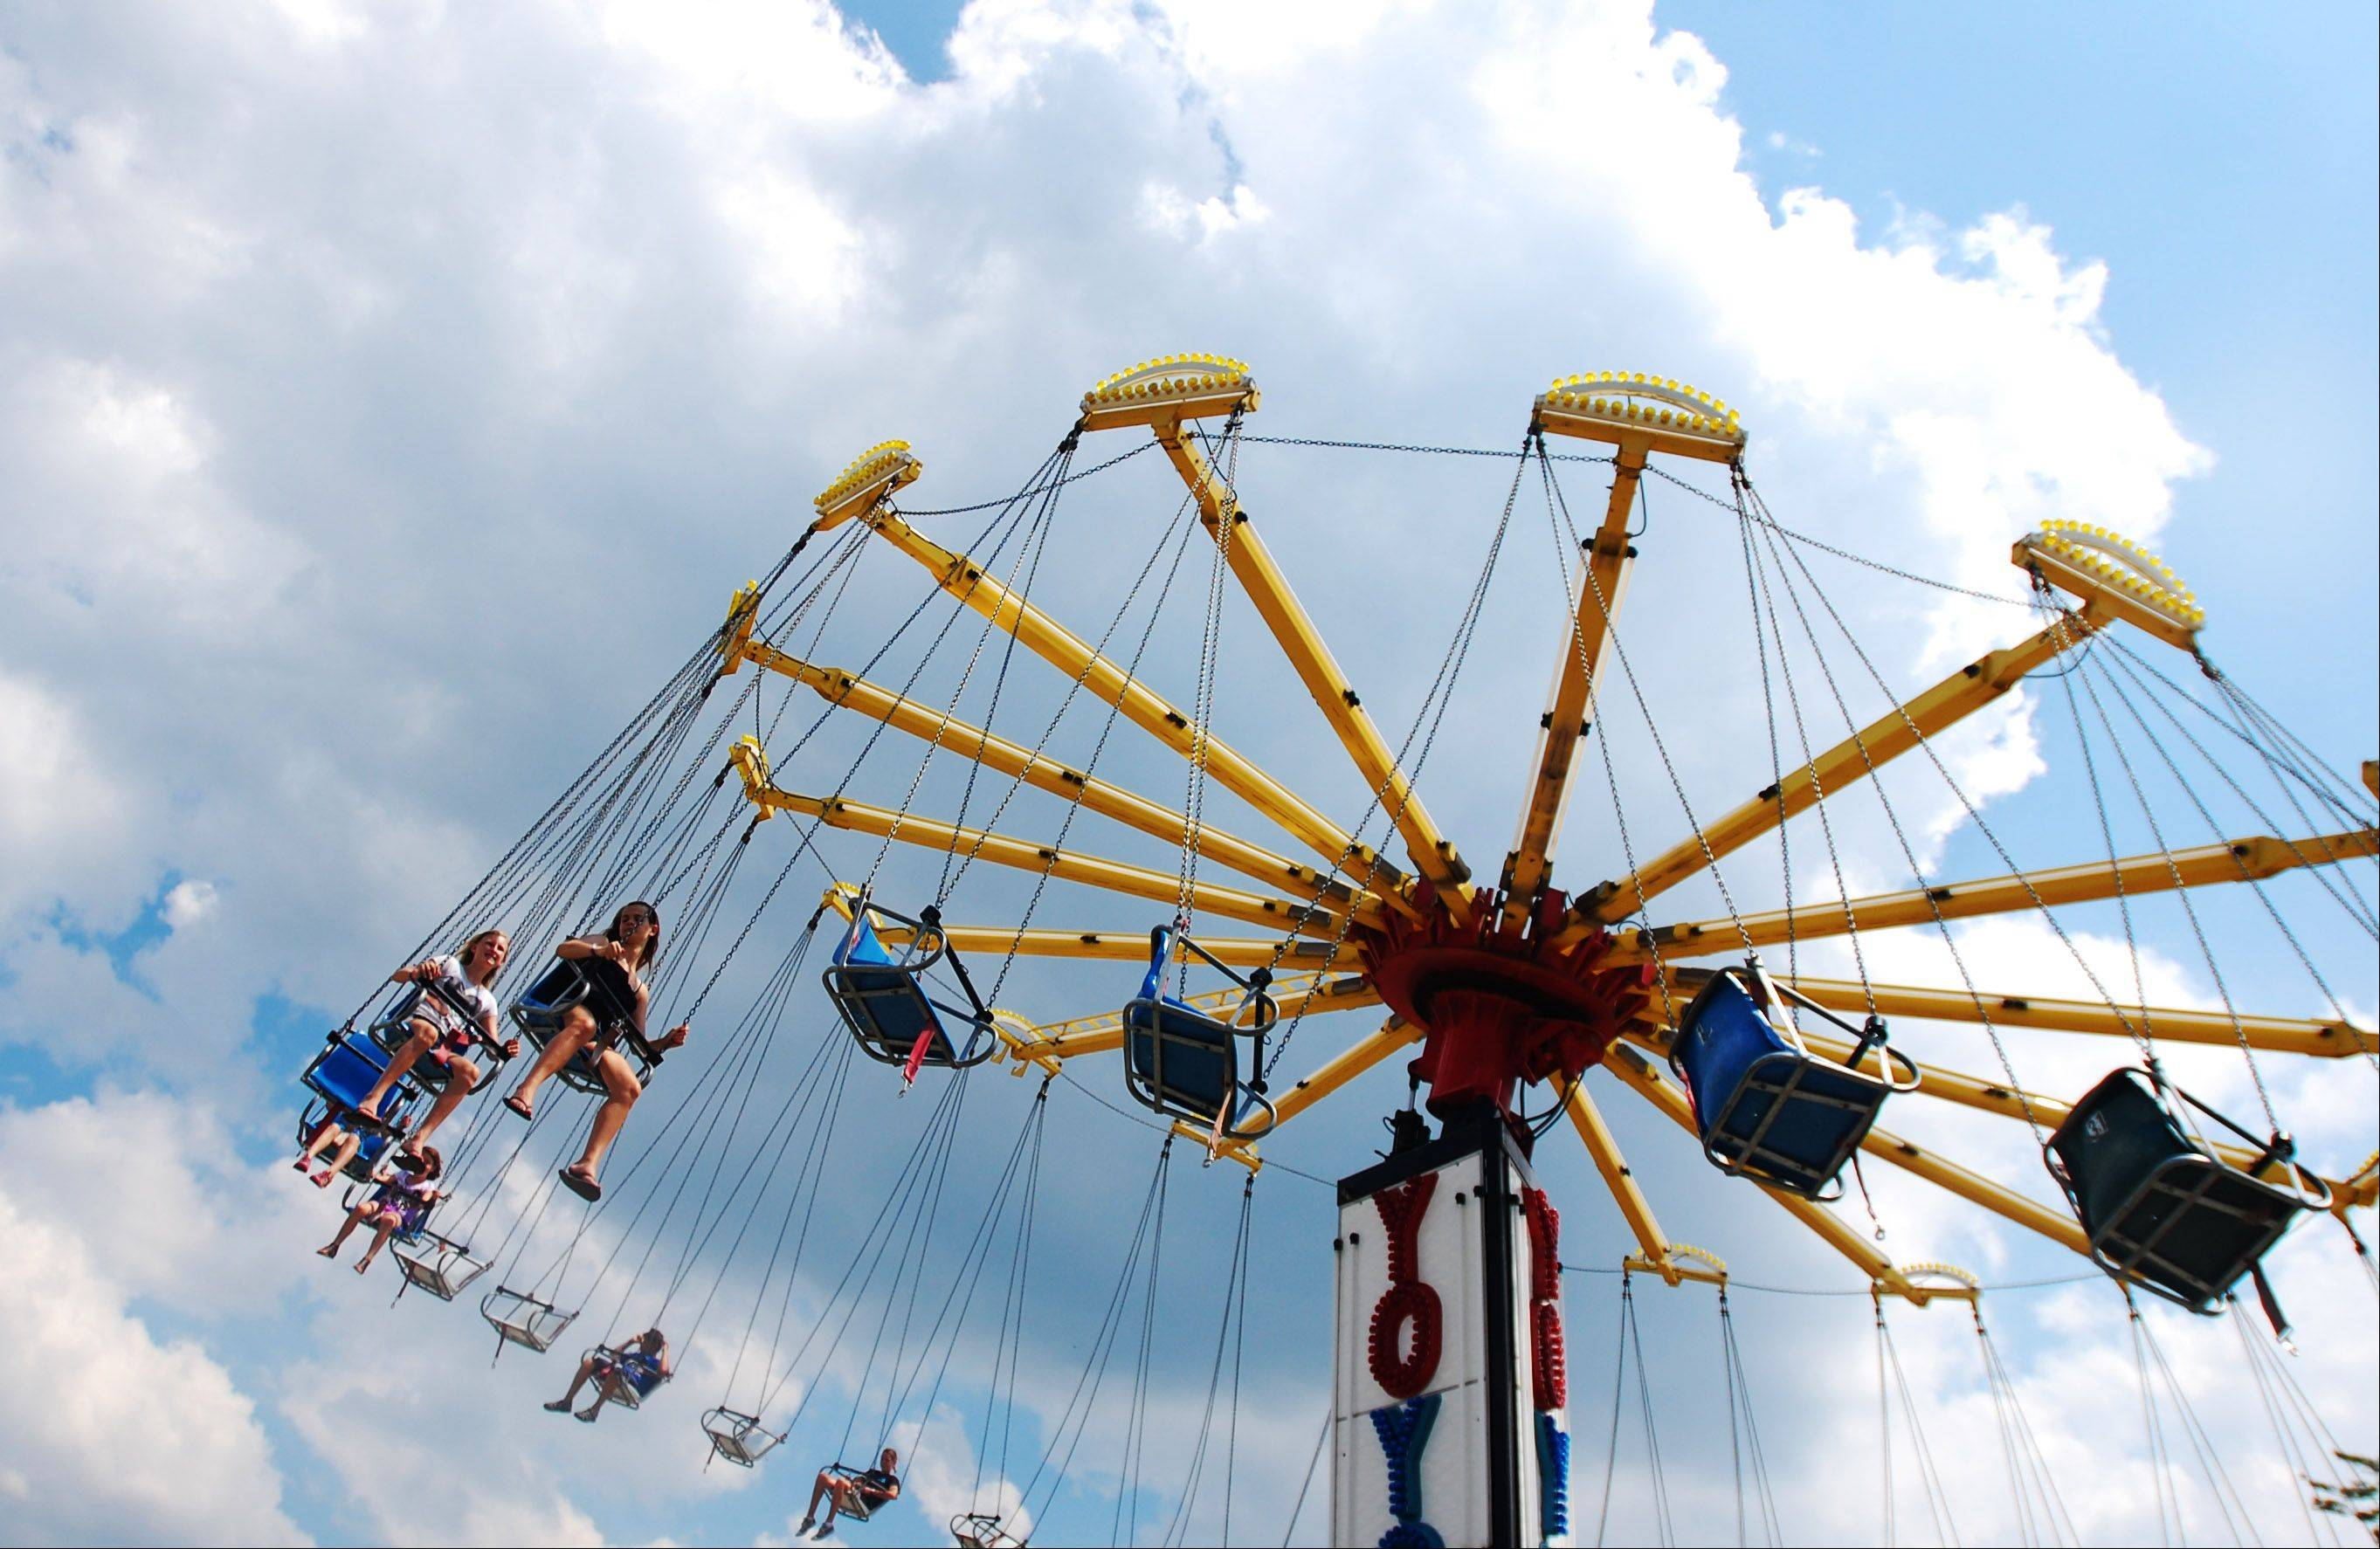 Rides were a popular attraction at The Windmill City Festival at the Riverwalk in Batavia on Sunday, July 14.